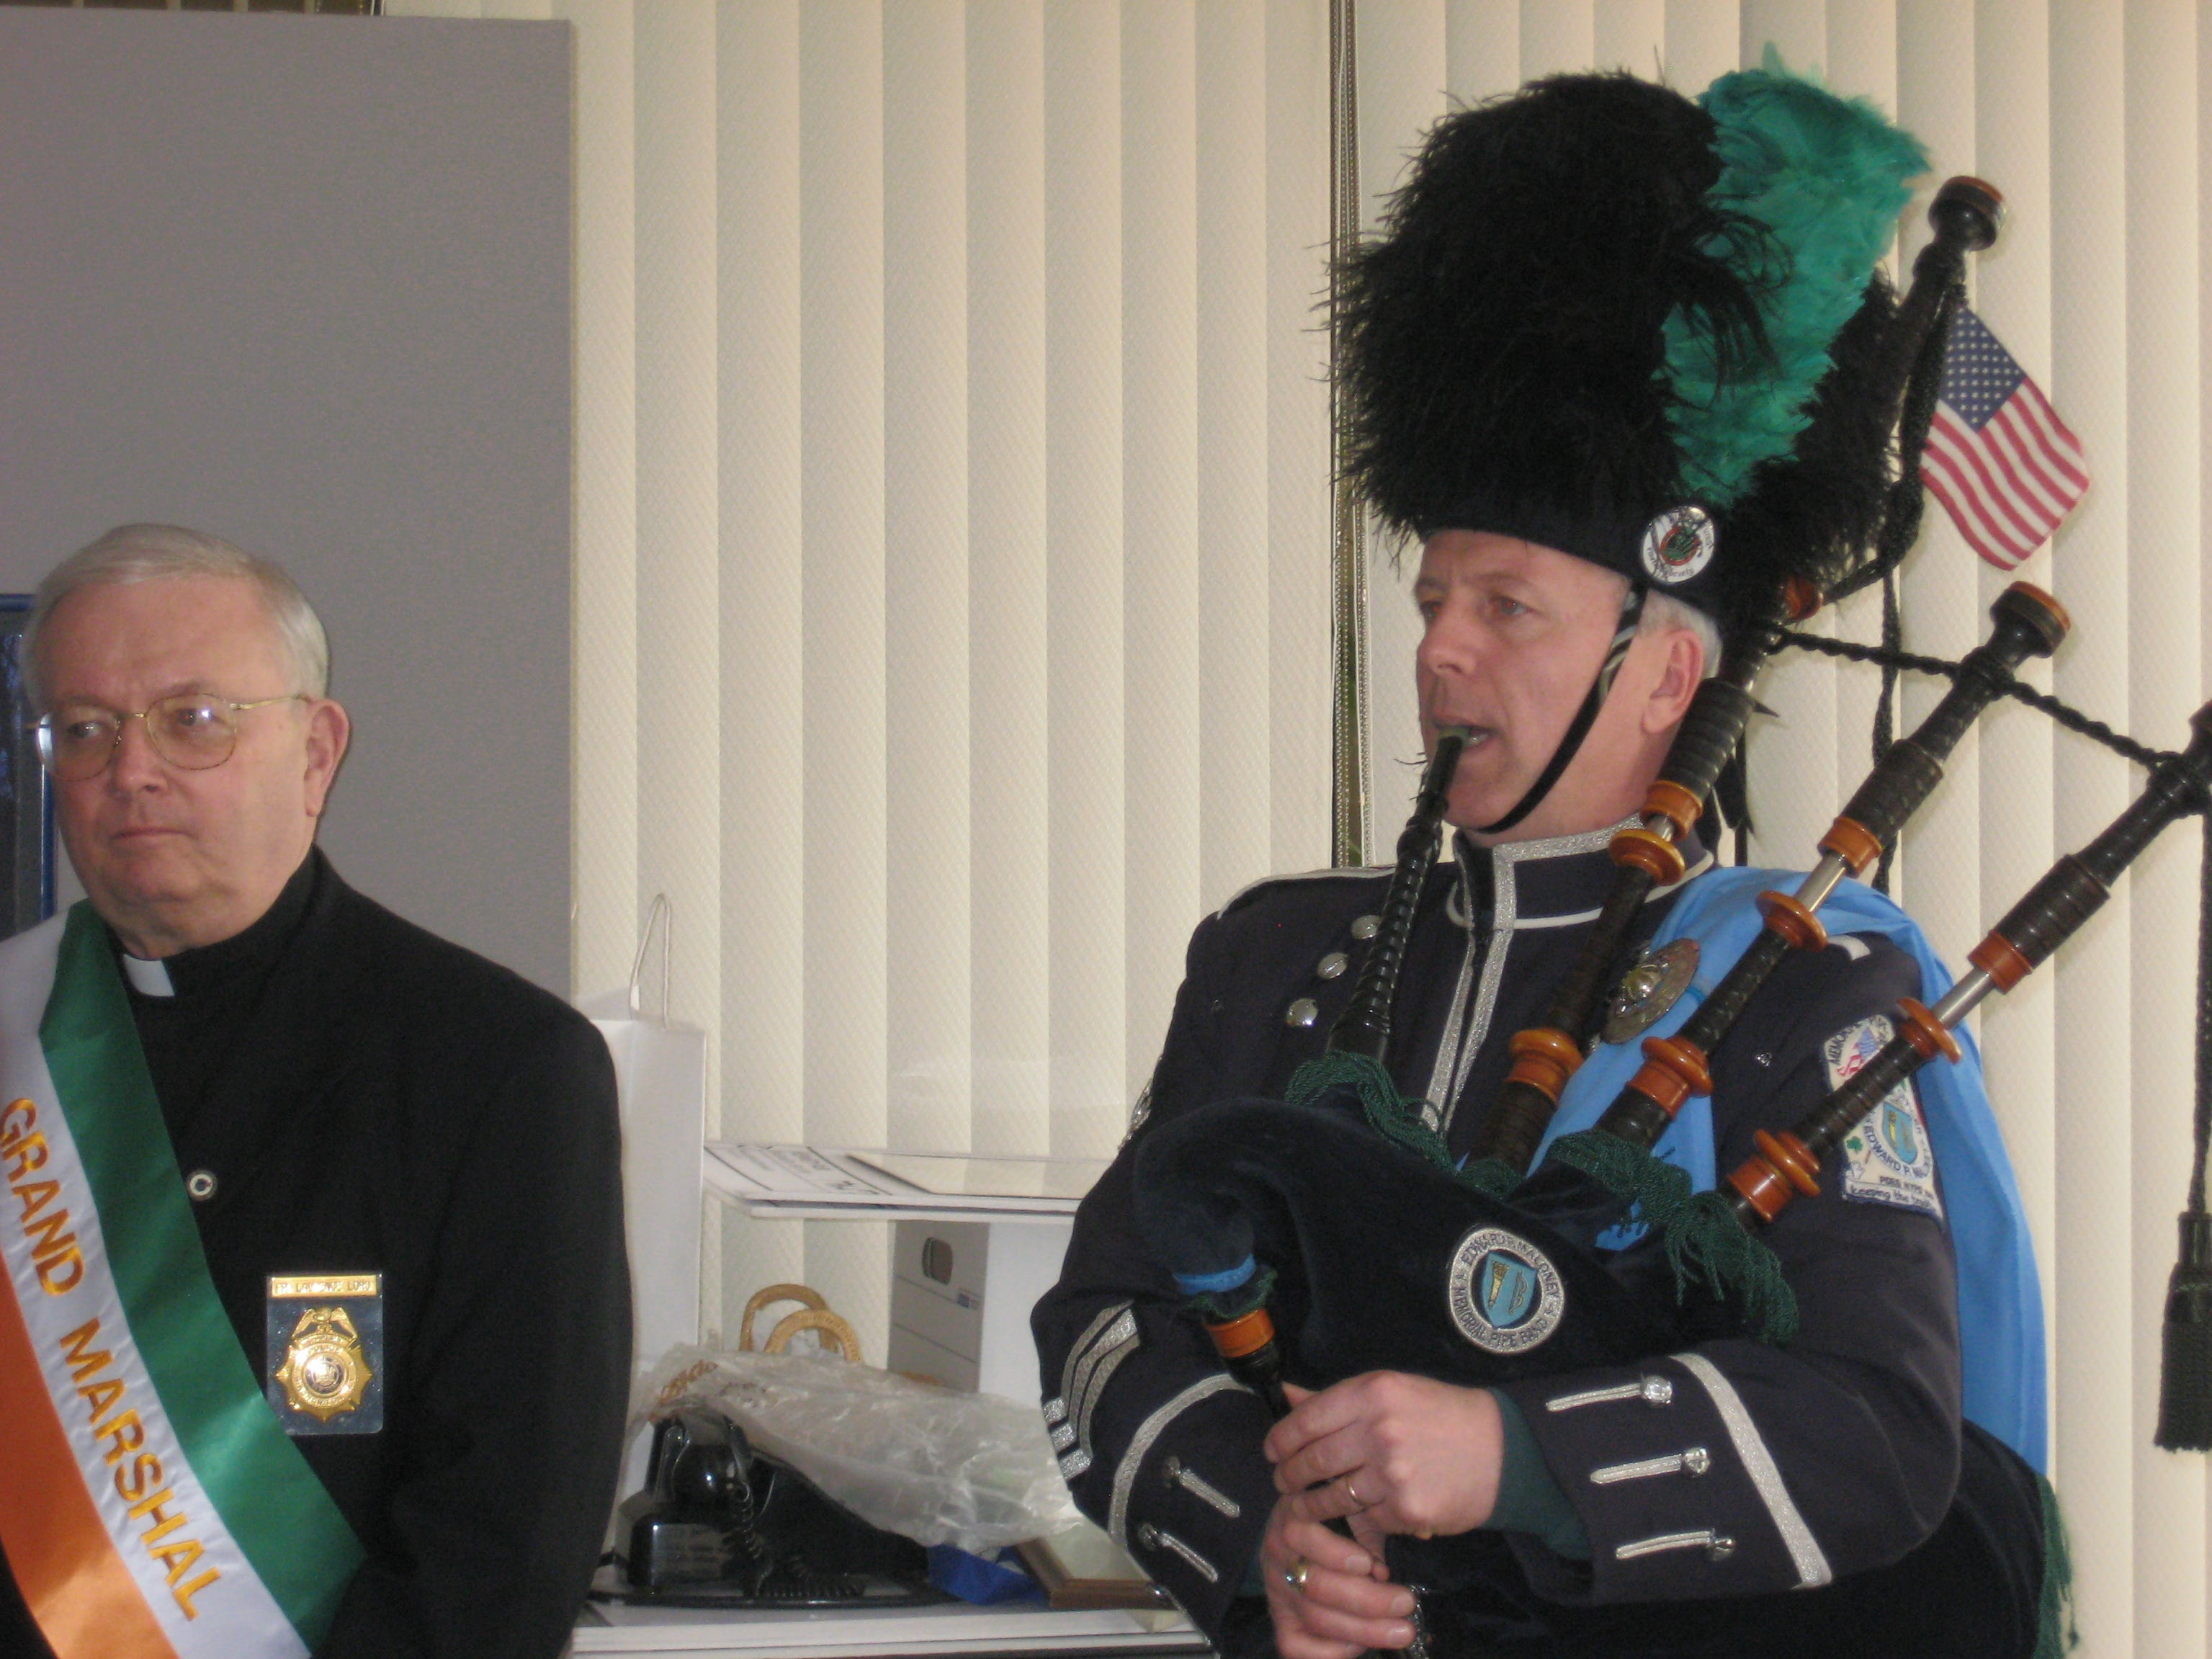 2010: Rich Maloney, a Binghamton firefighter, plays his bag pipes at a city hall press conference promoting Saturday's St. Patrick's Day Parade. Maloney will be in the parade with the Maloney Memorial Pipe Band. Next to him is the Rev. Laurence Lord, this year's grand marshall.